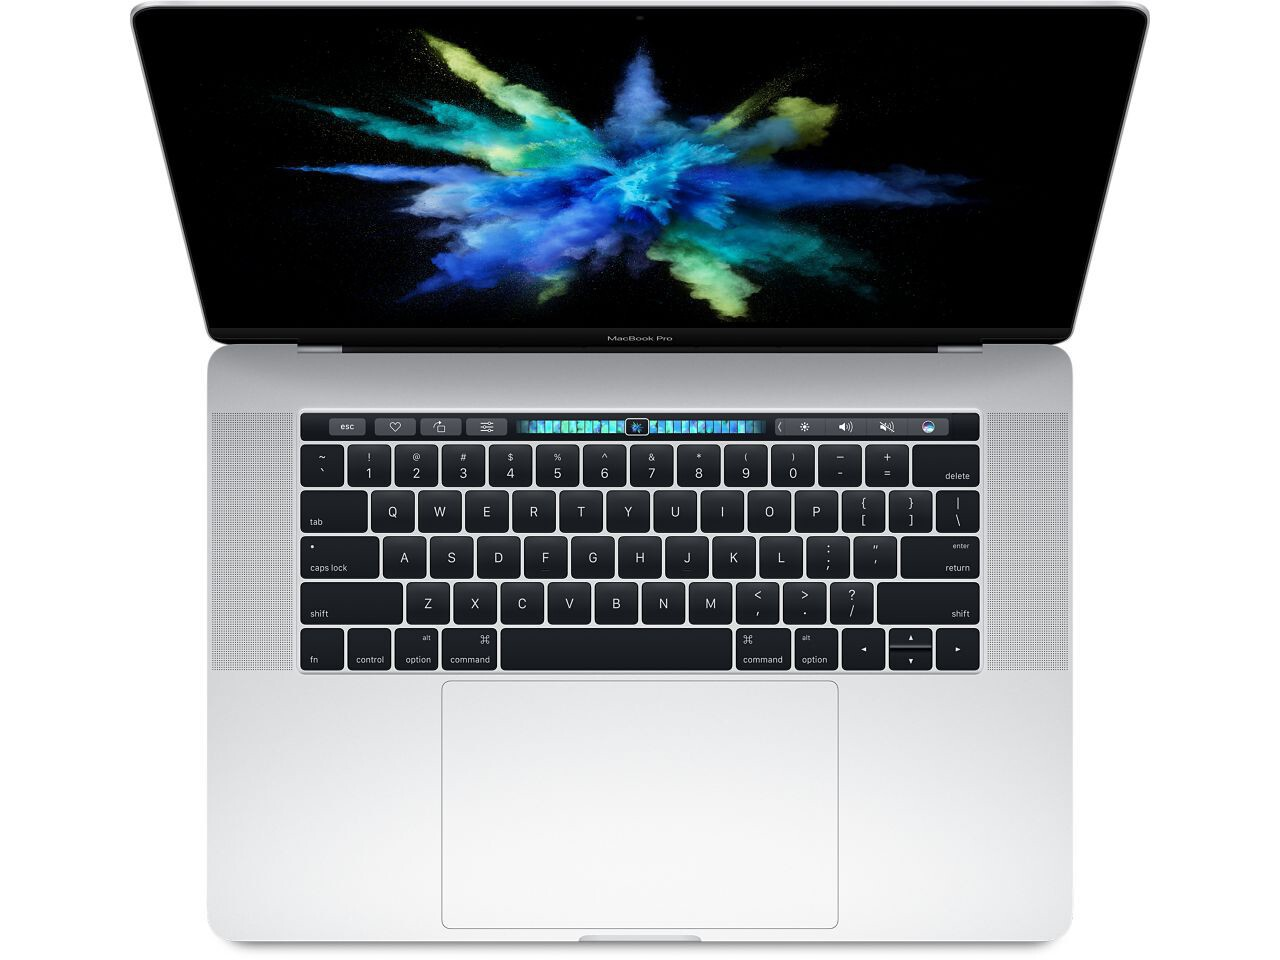 macbook pro 15 inch touch bar 2016 silver